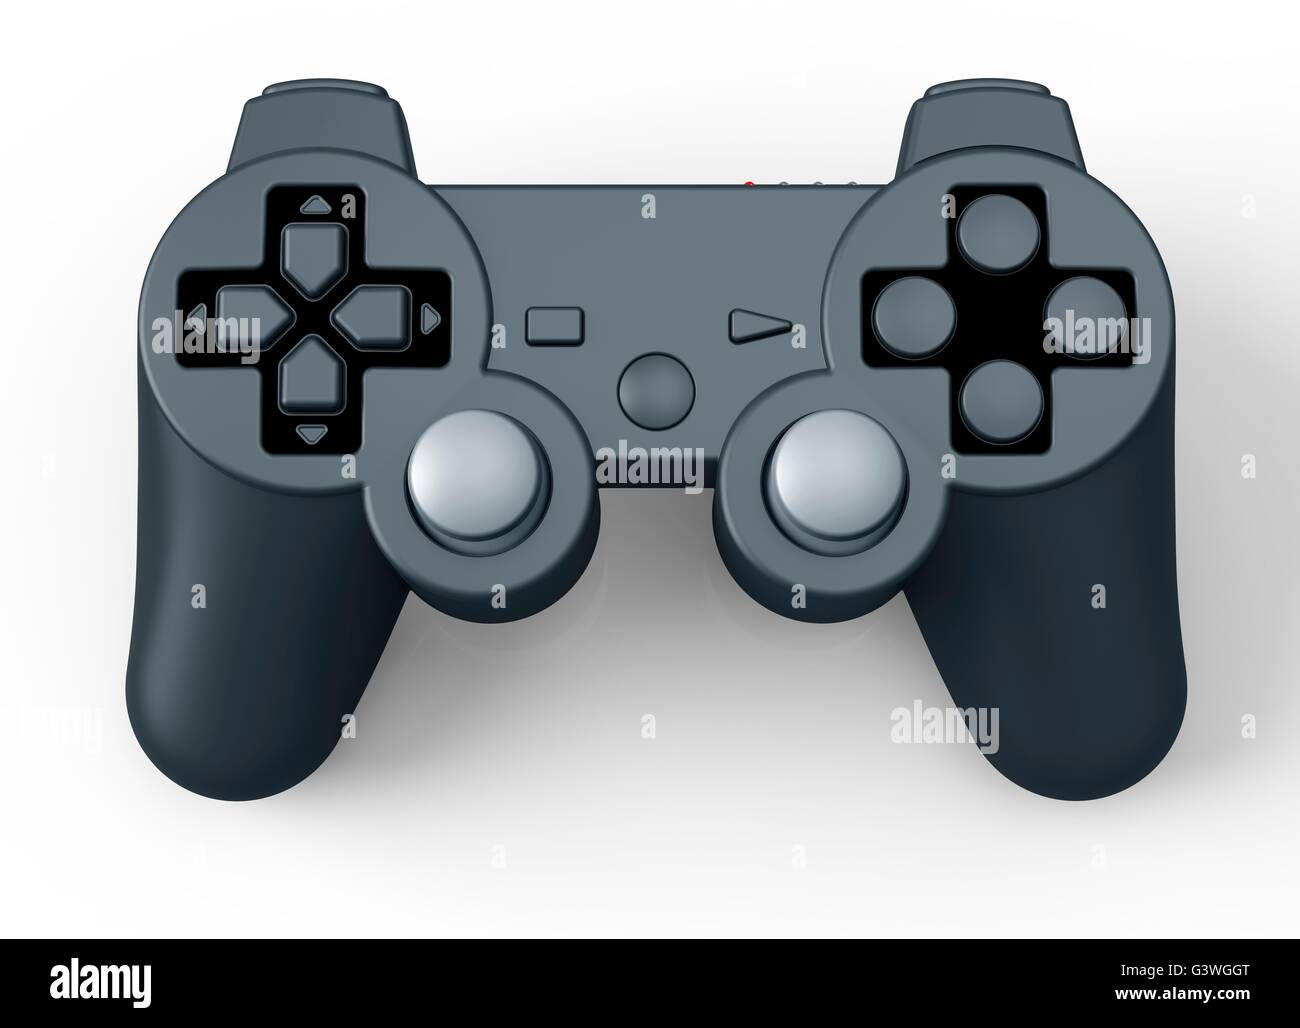 game controller for console isolated on white. - Stock Image